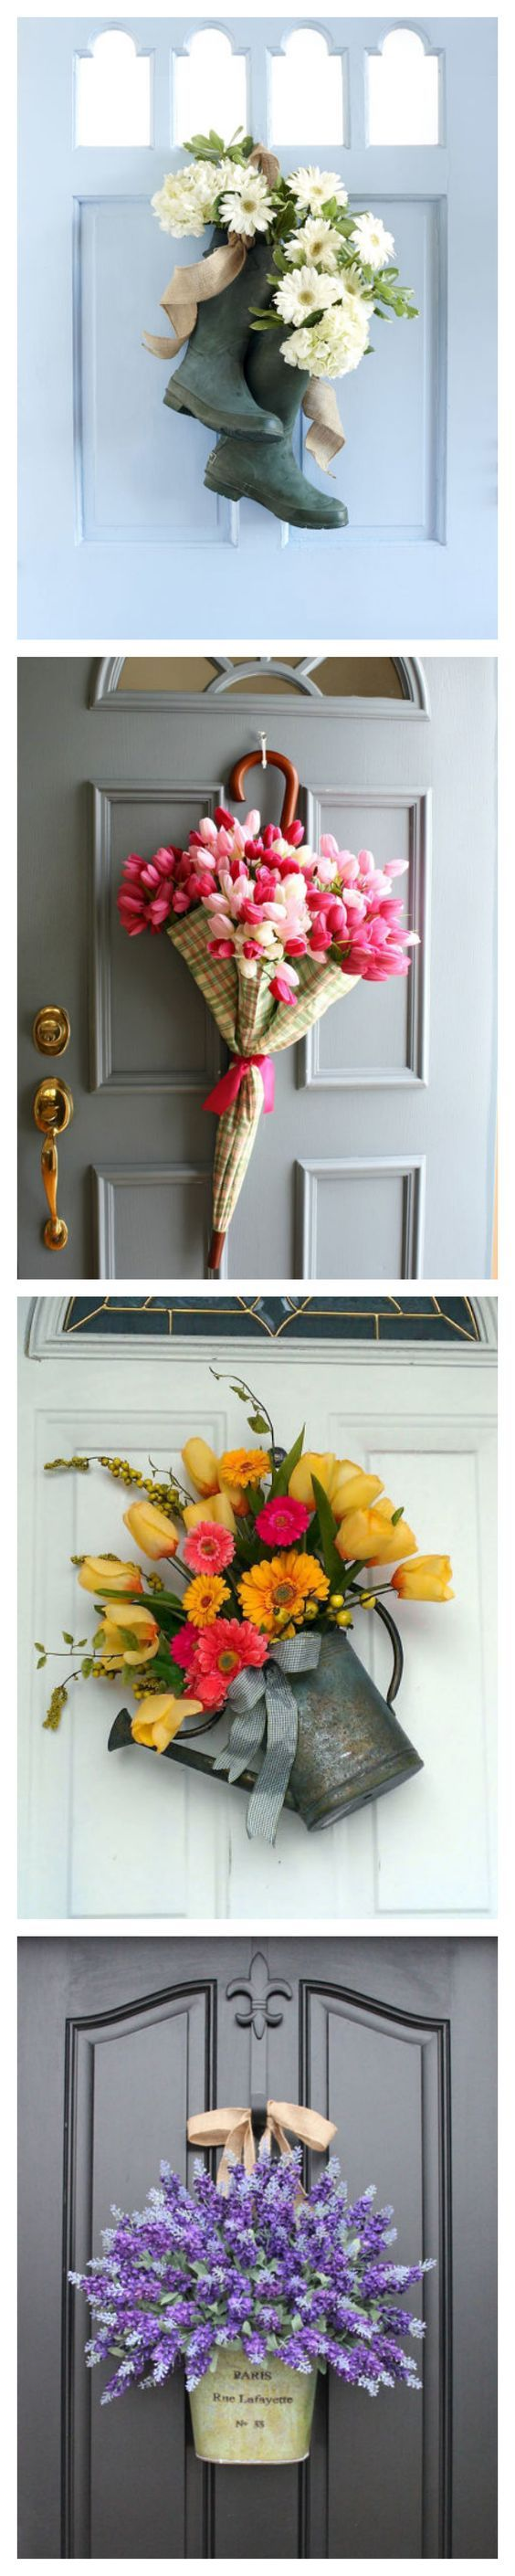 12 Beautiful Spring Decorations to Hang on Your Door That Aren't Wreaths